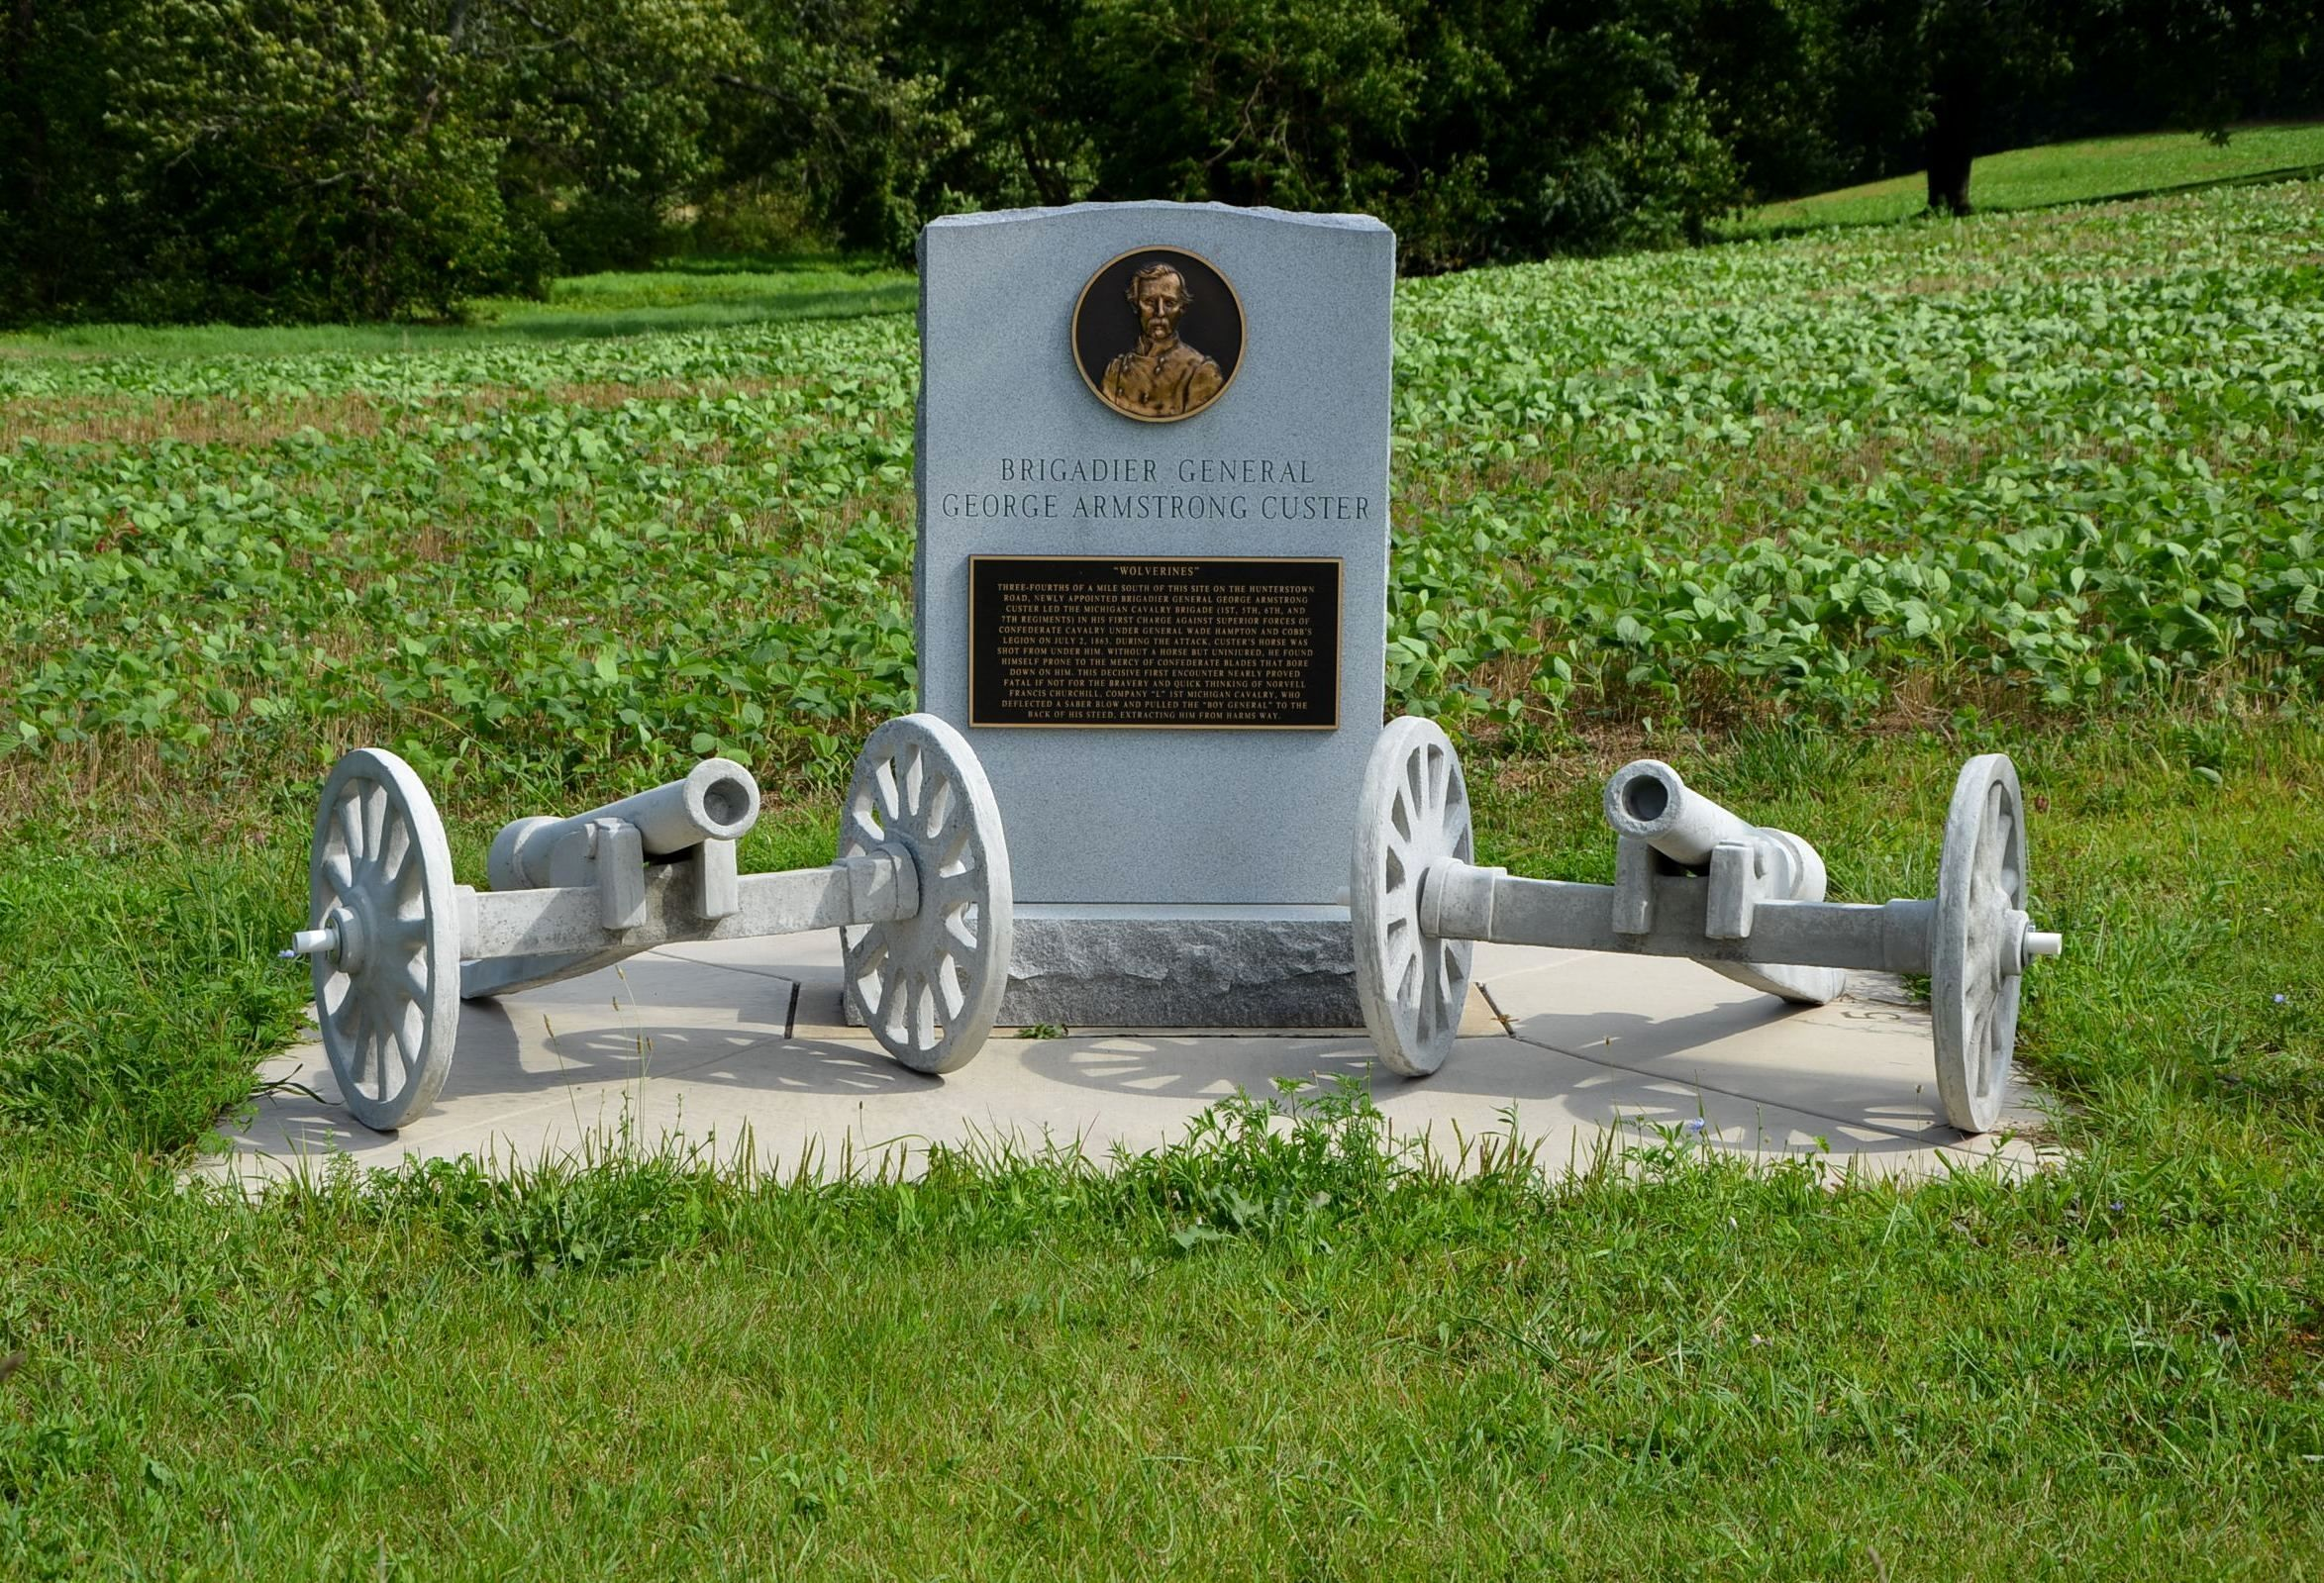 Custer Monument At Hunterstown Pennsylvania A New Base Was Added To The Monument In 2013 And A Pair Of Miniature Cannon George Armstrong Custer Grave Marker